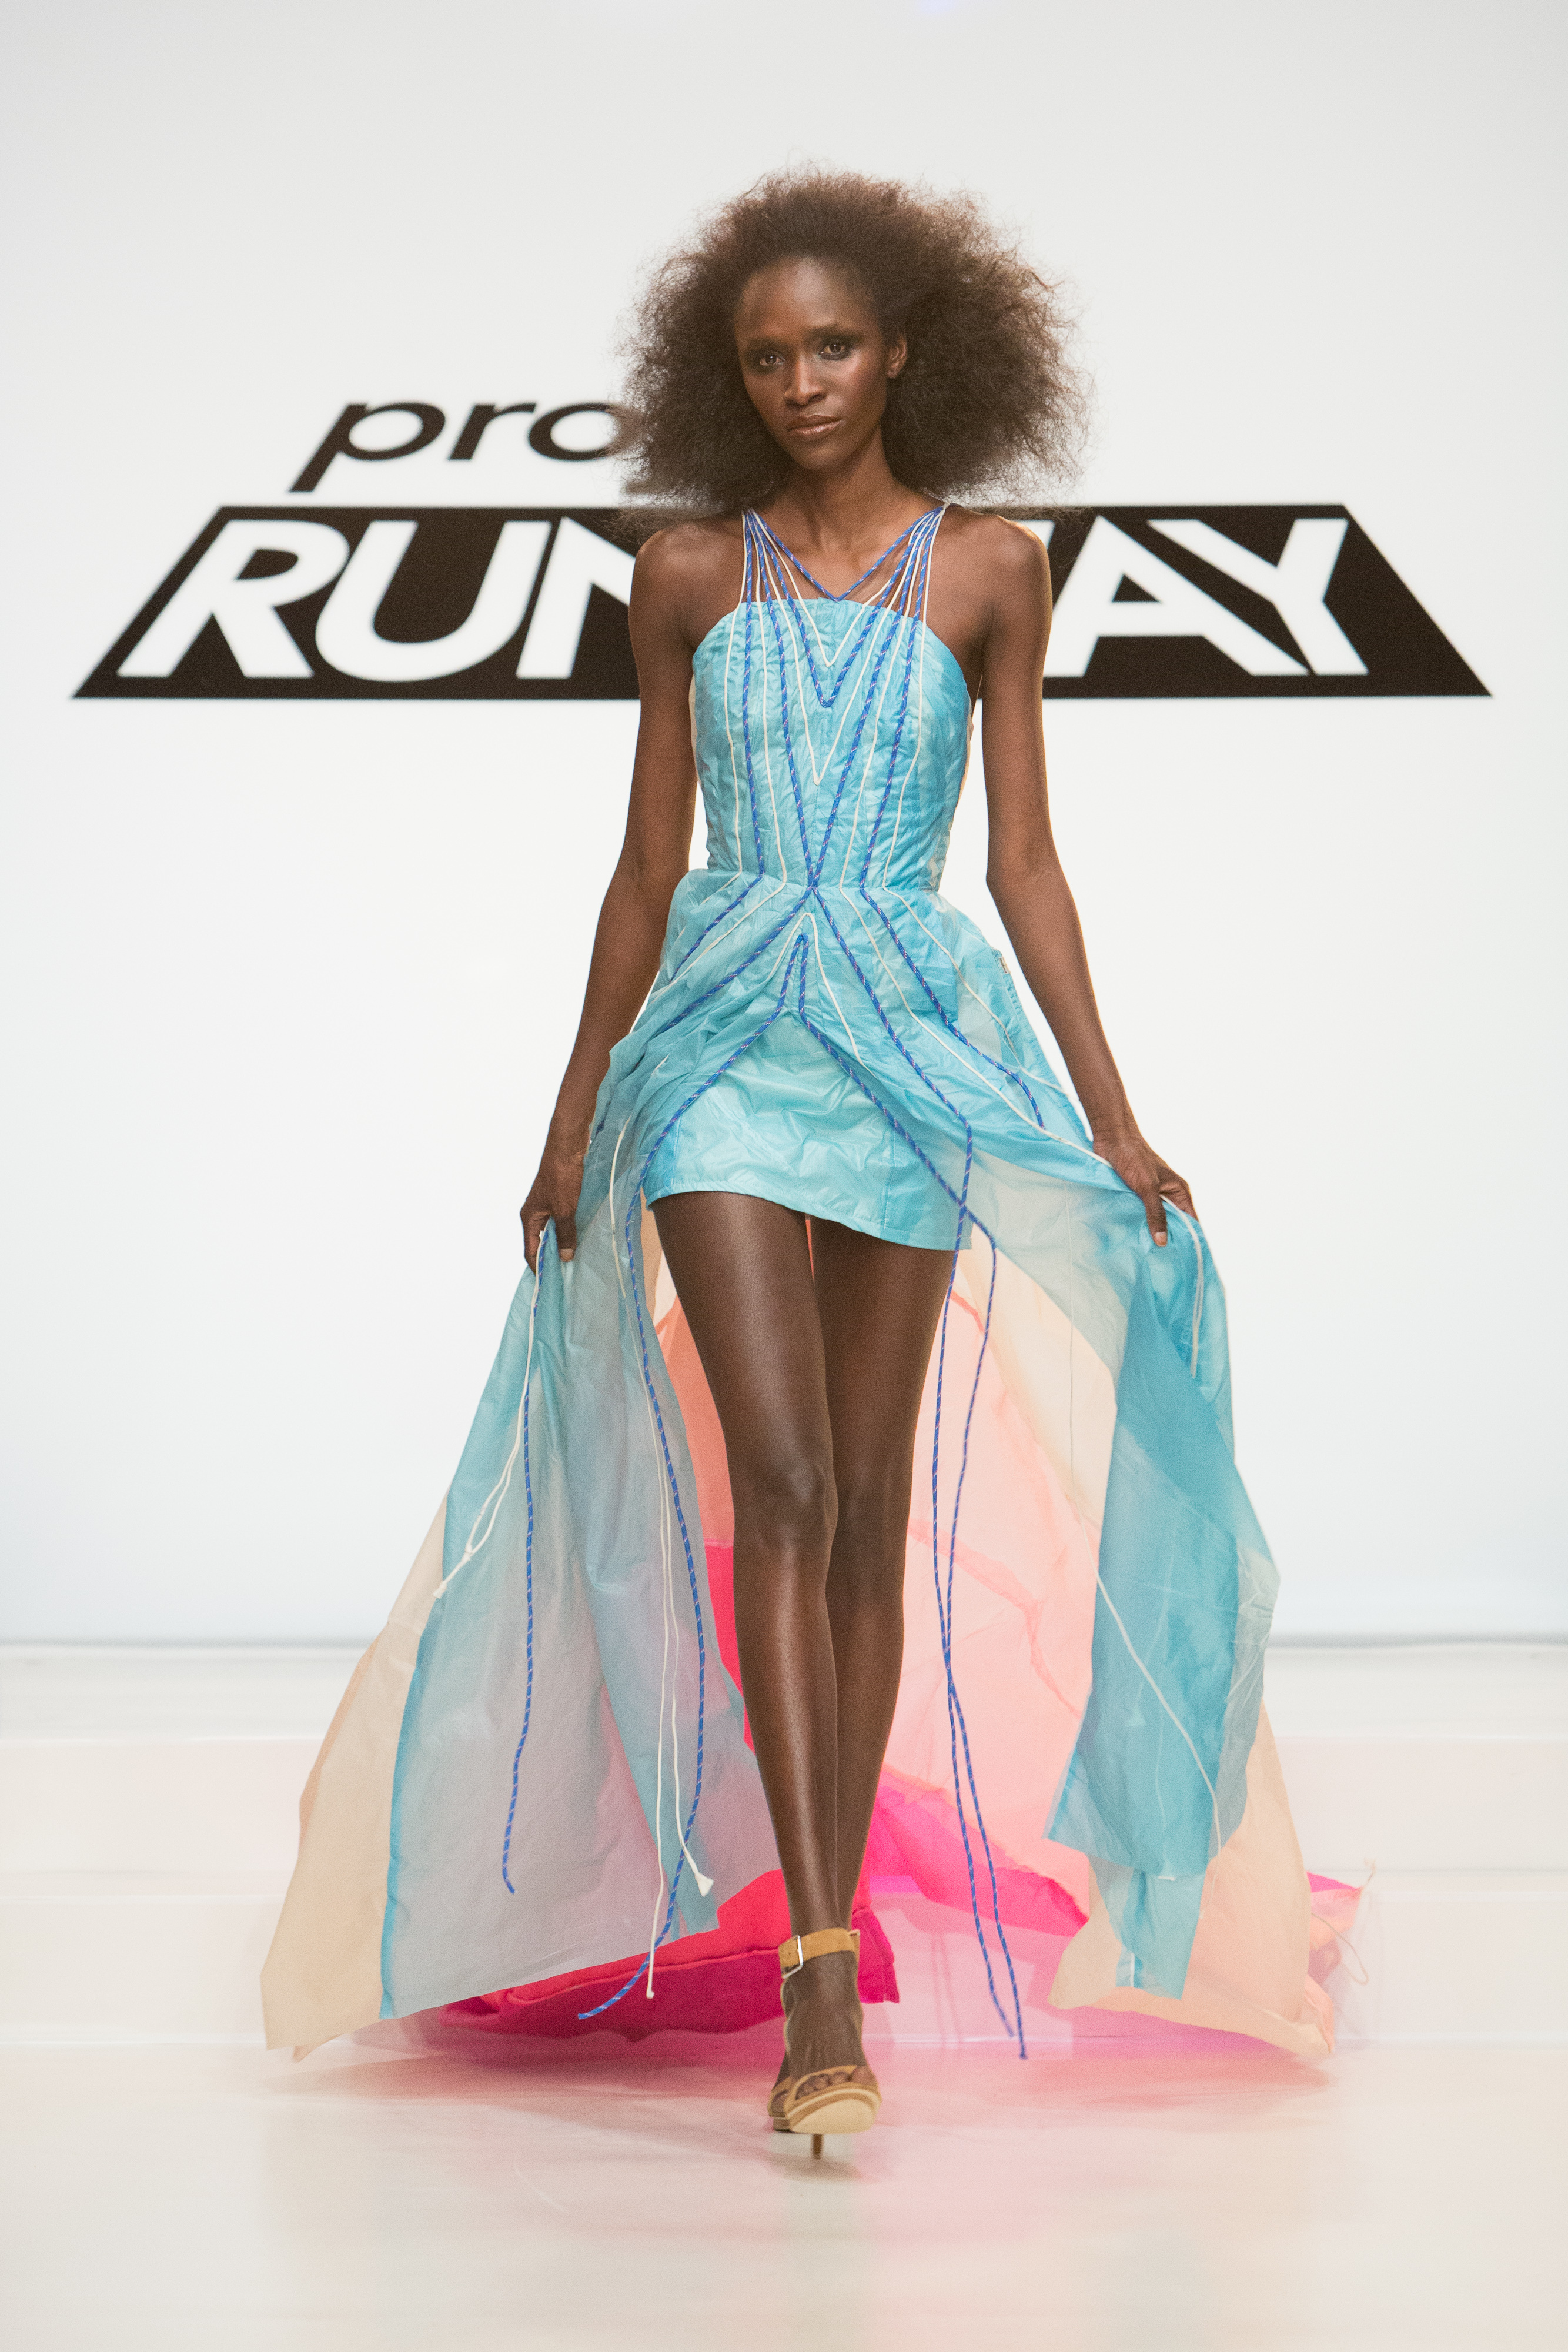 New Wrinkle in the Competition as Project Runway Designers Use ...